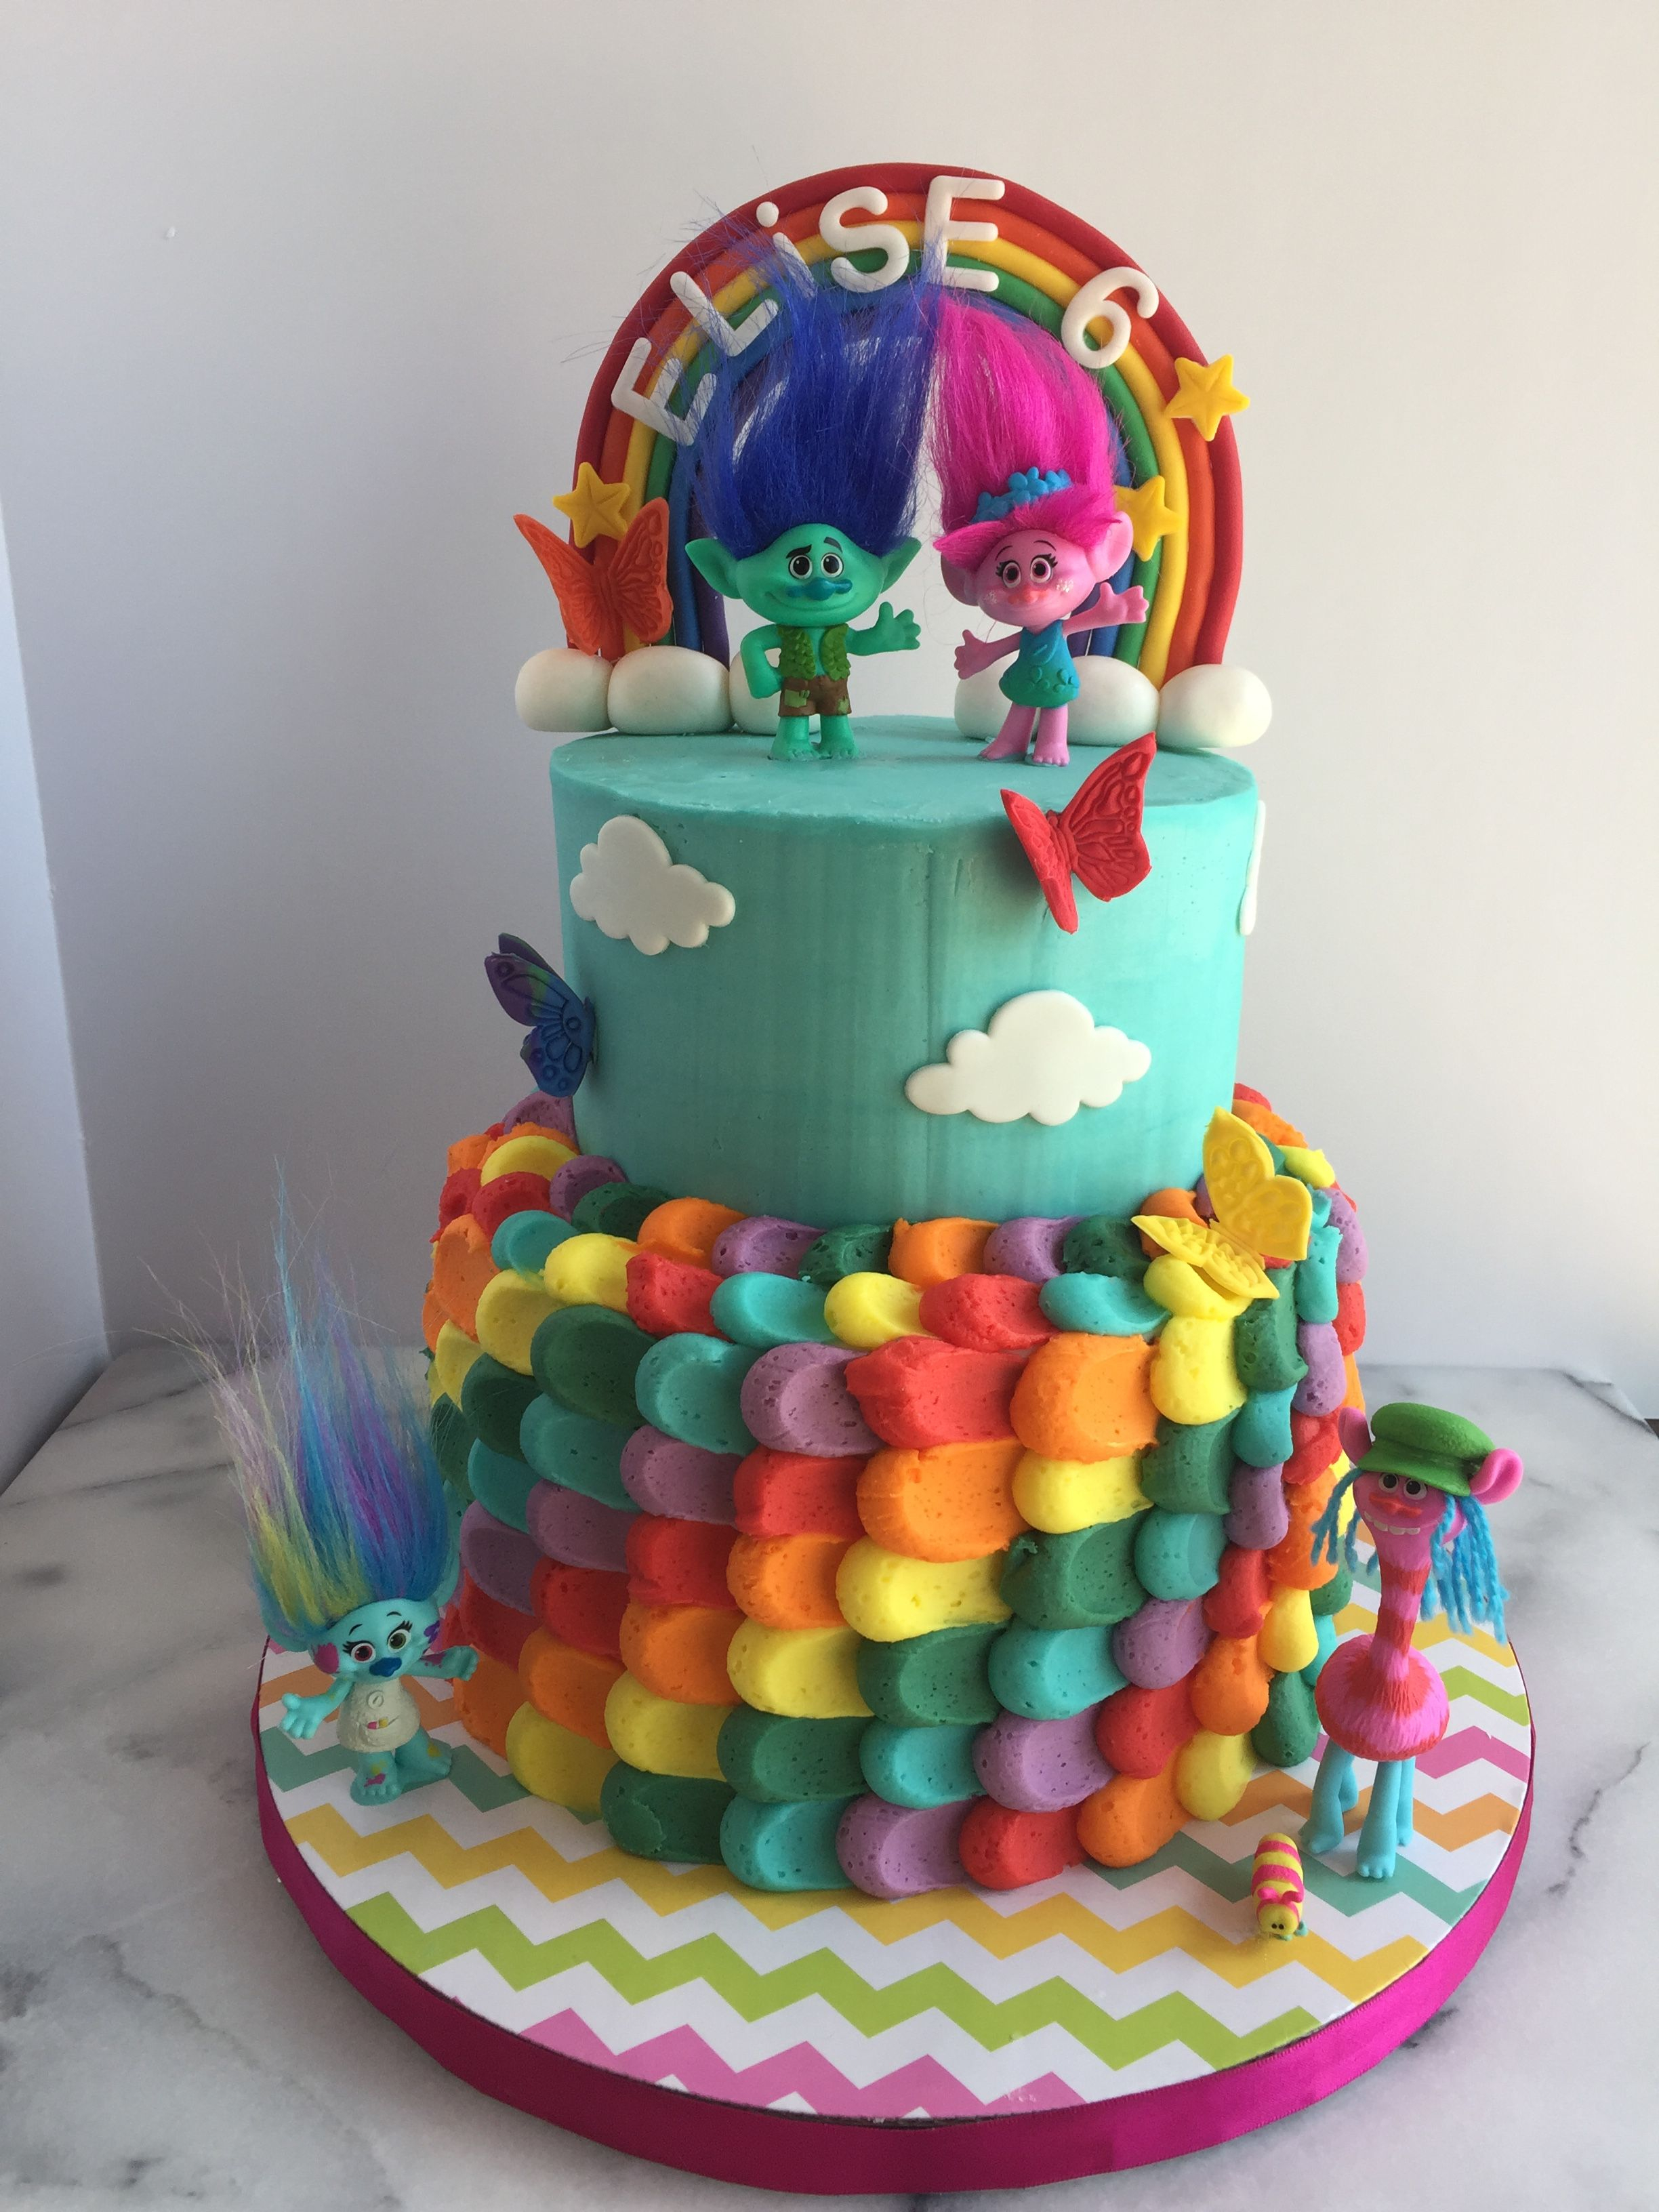 2448 X 3264 In 23 Amazing Photo Of Colorful Birthday Cakes